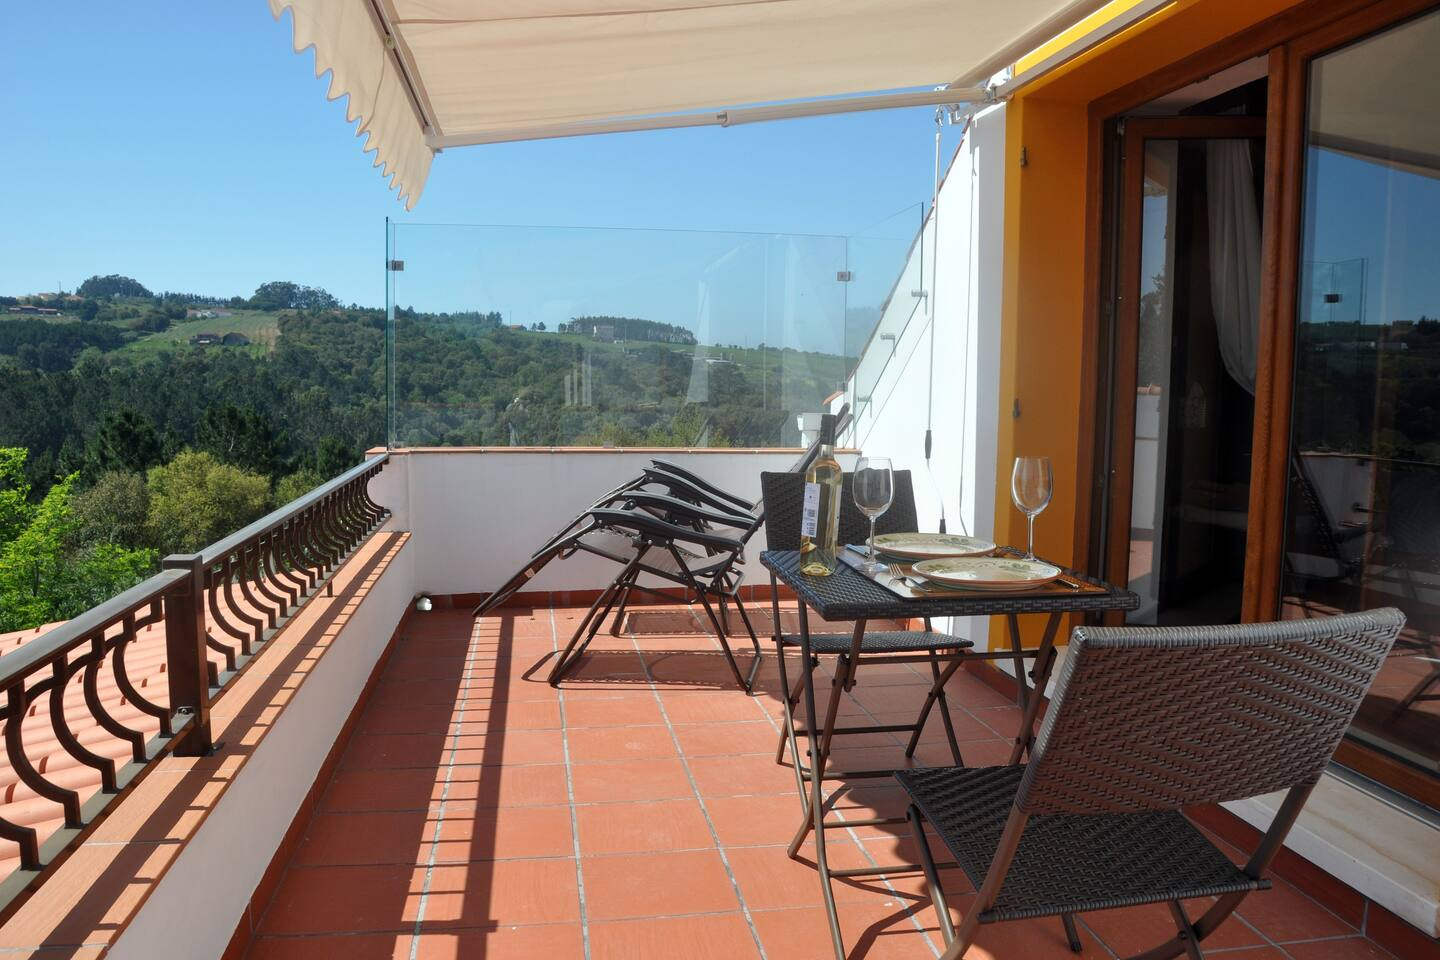 A glass windbreak AND a sun awning maximises terrace time